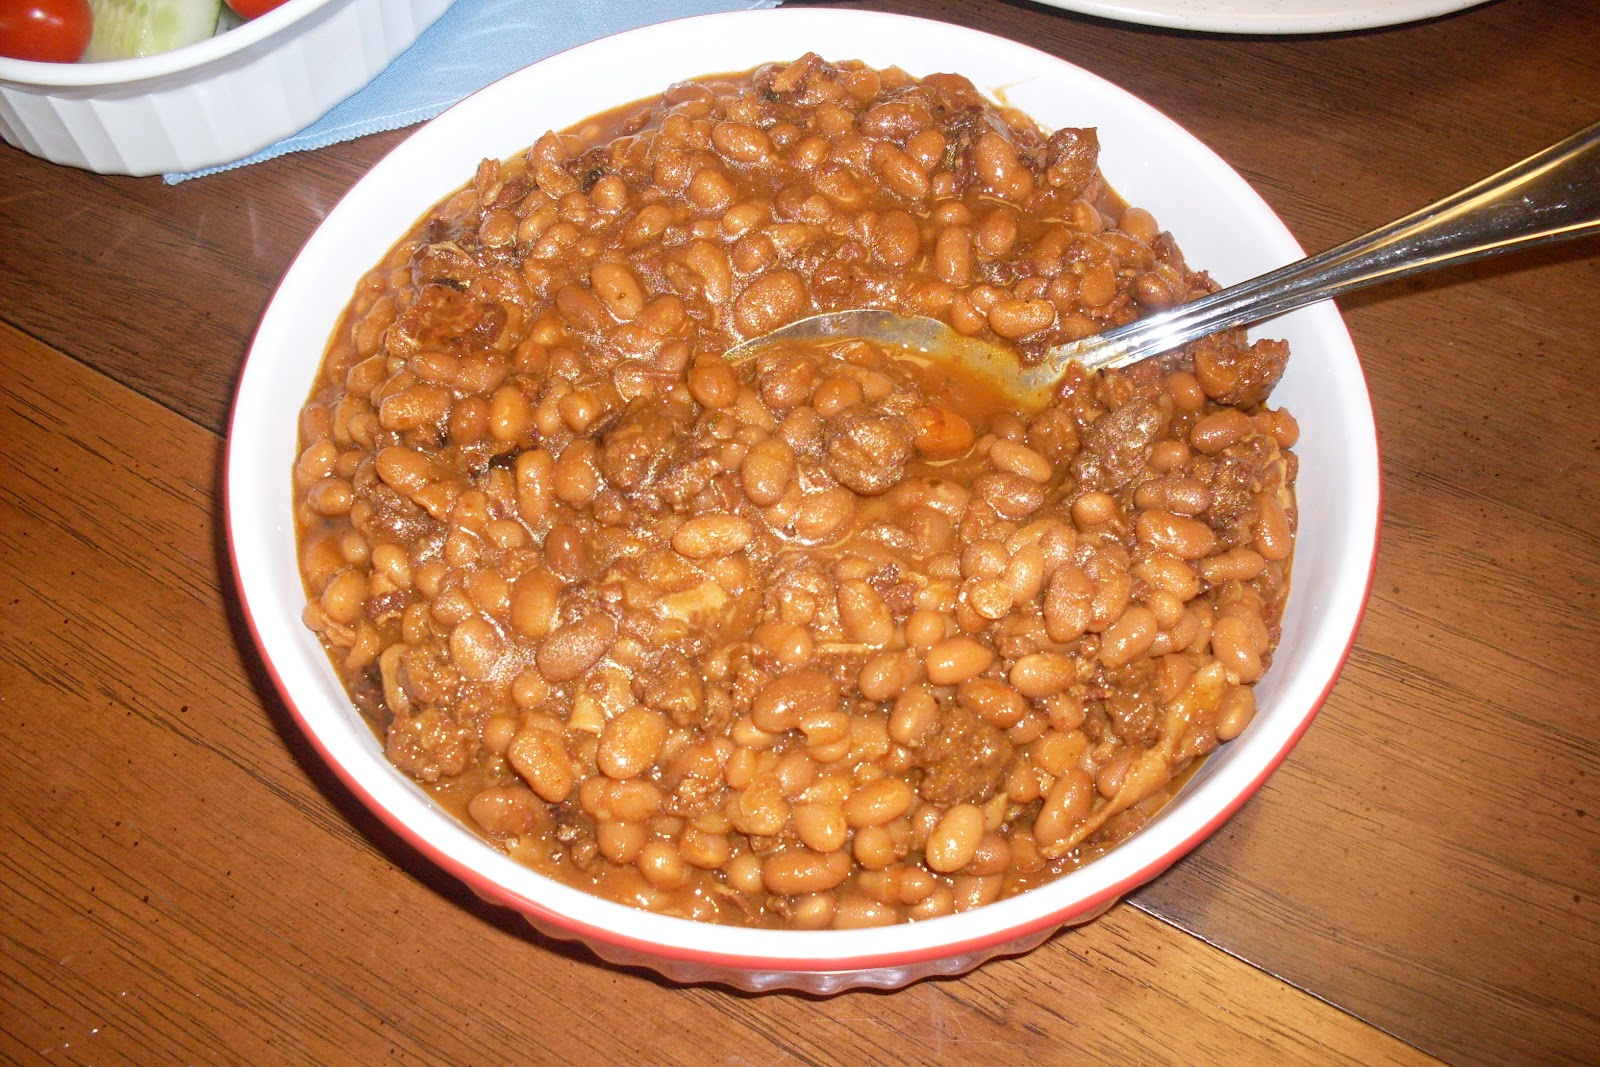 Our Sunday Cafe: Western Style Baked Beans, in the crockpot